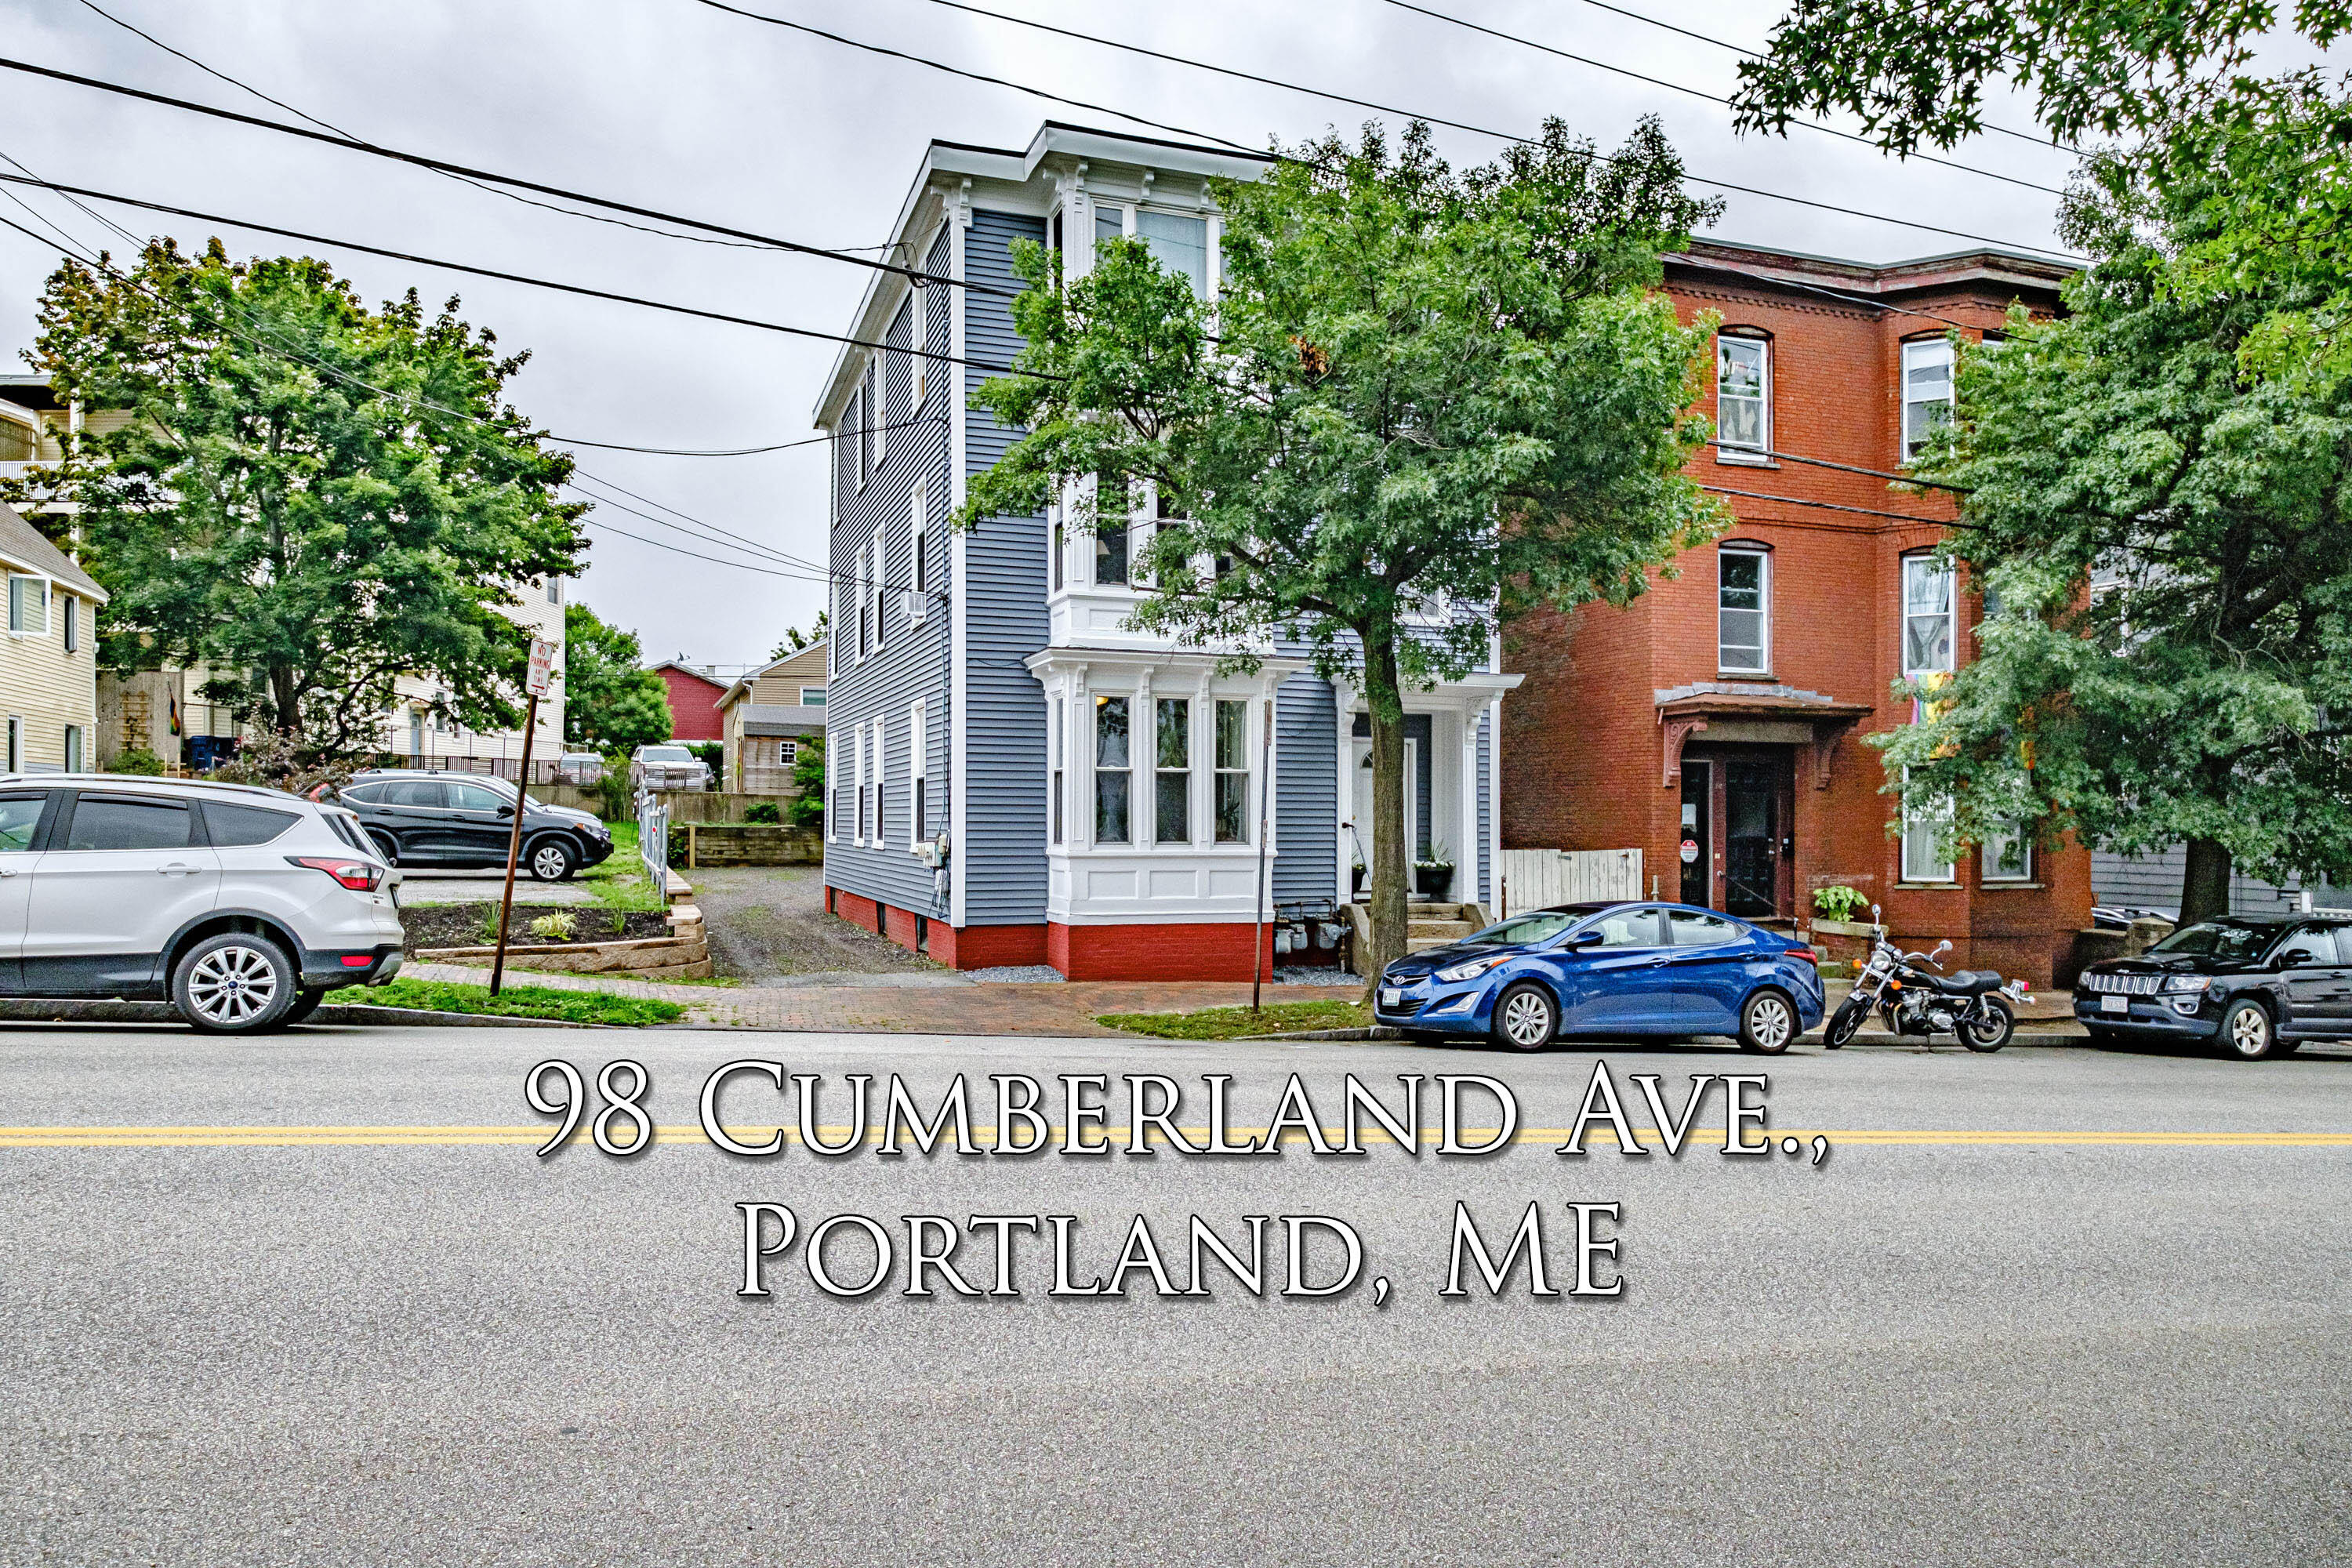 Main image for MLS listing 1501628